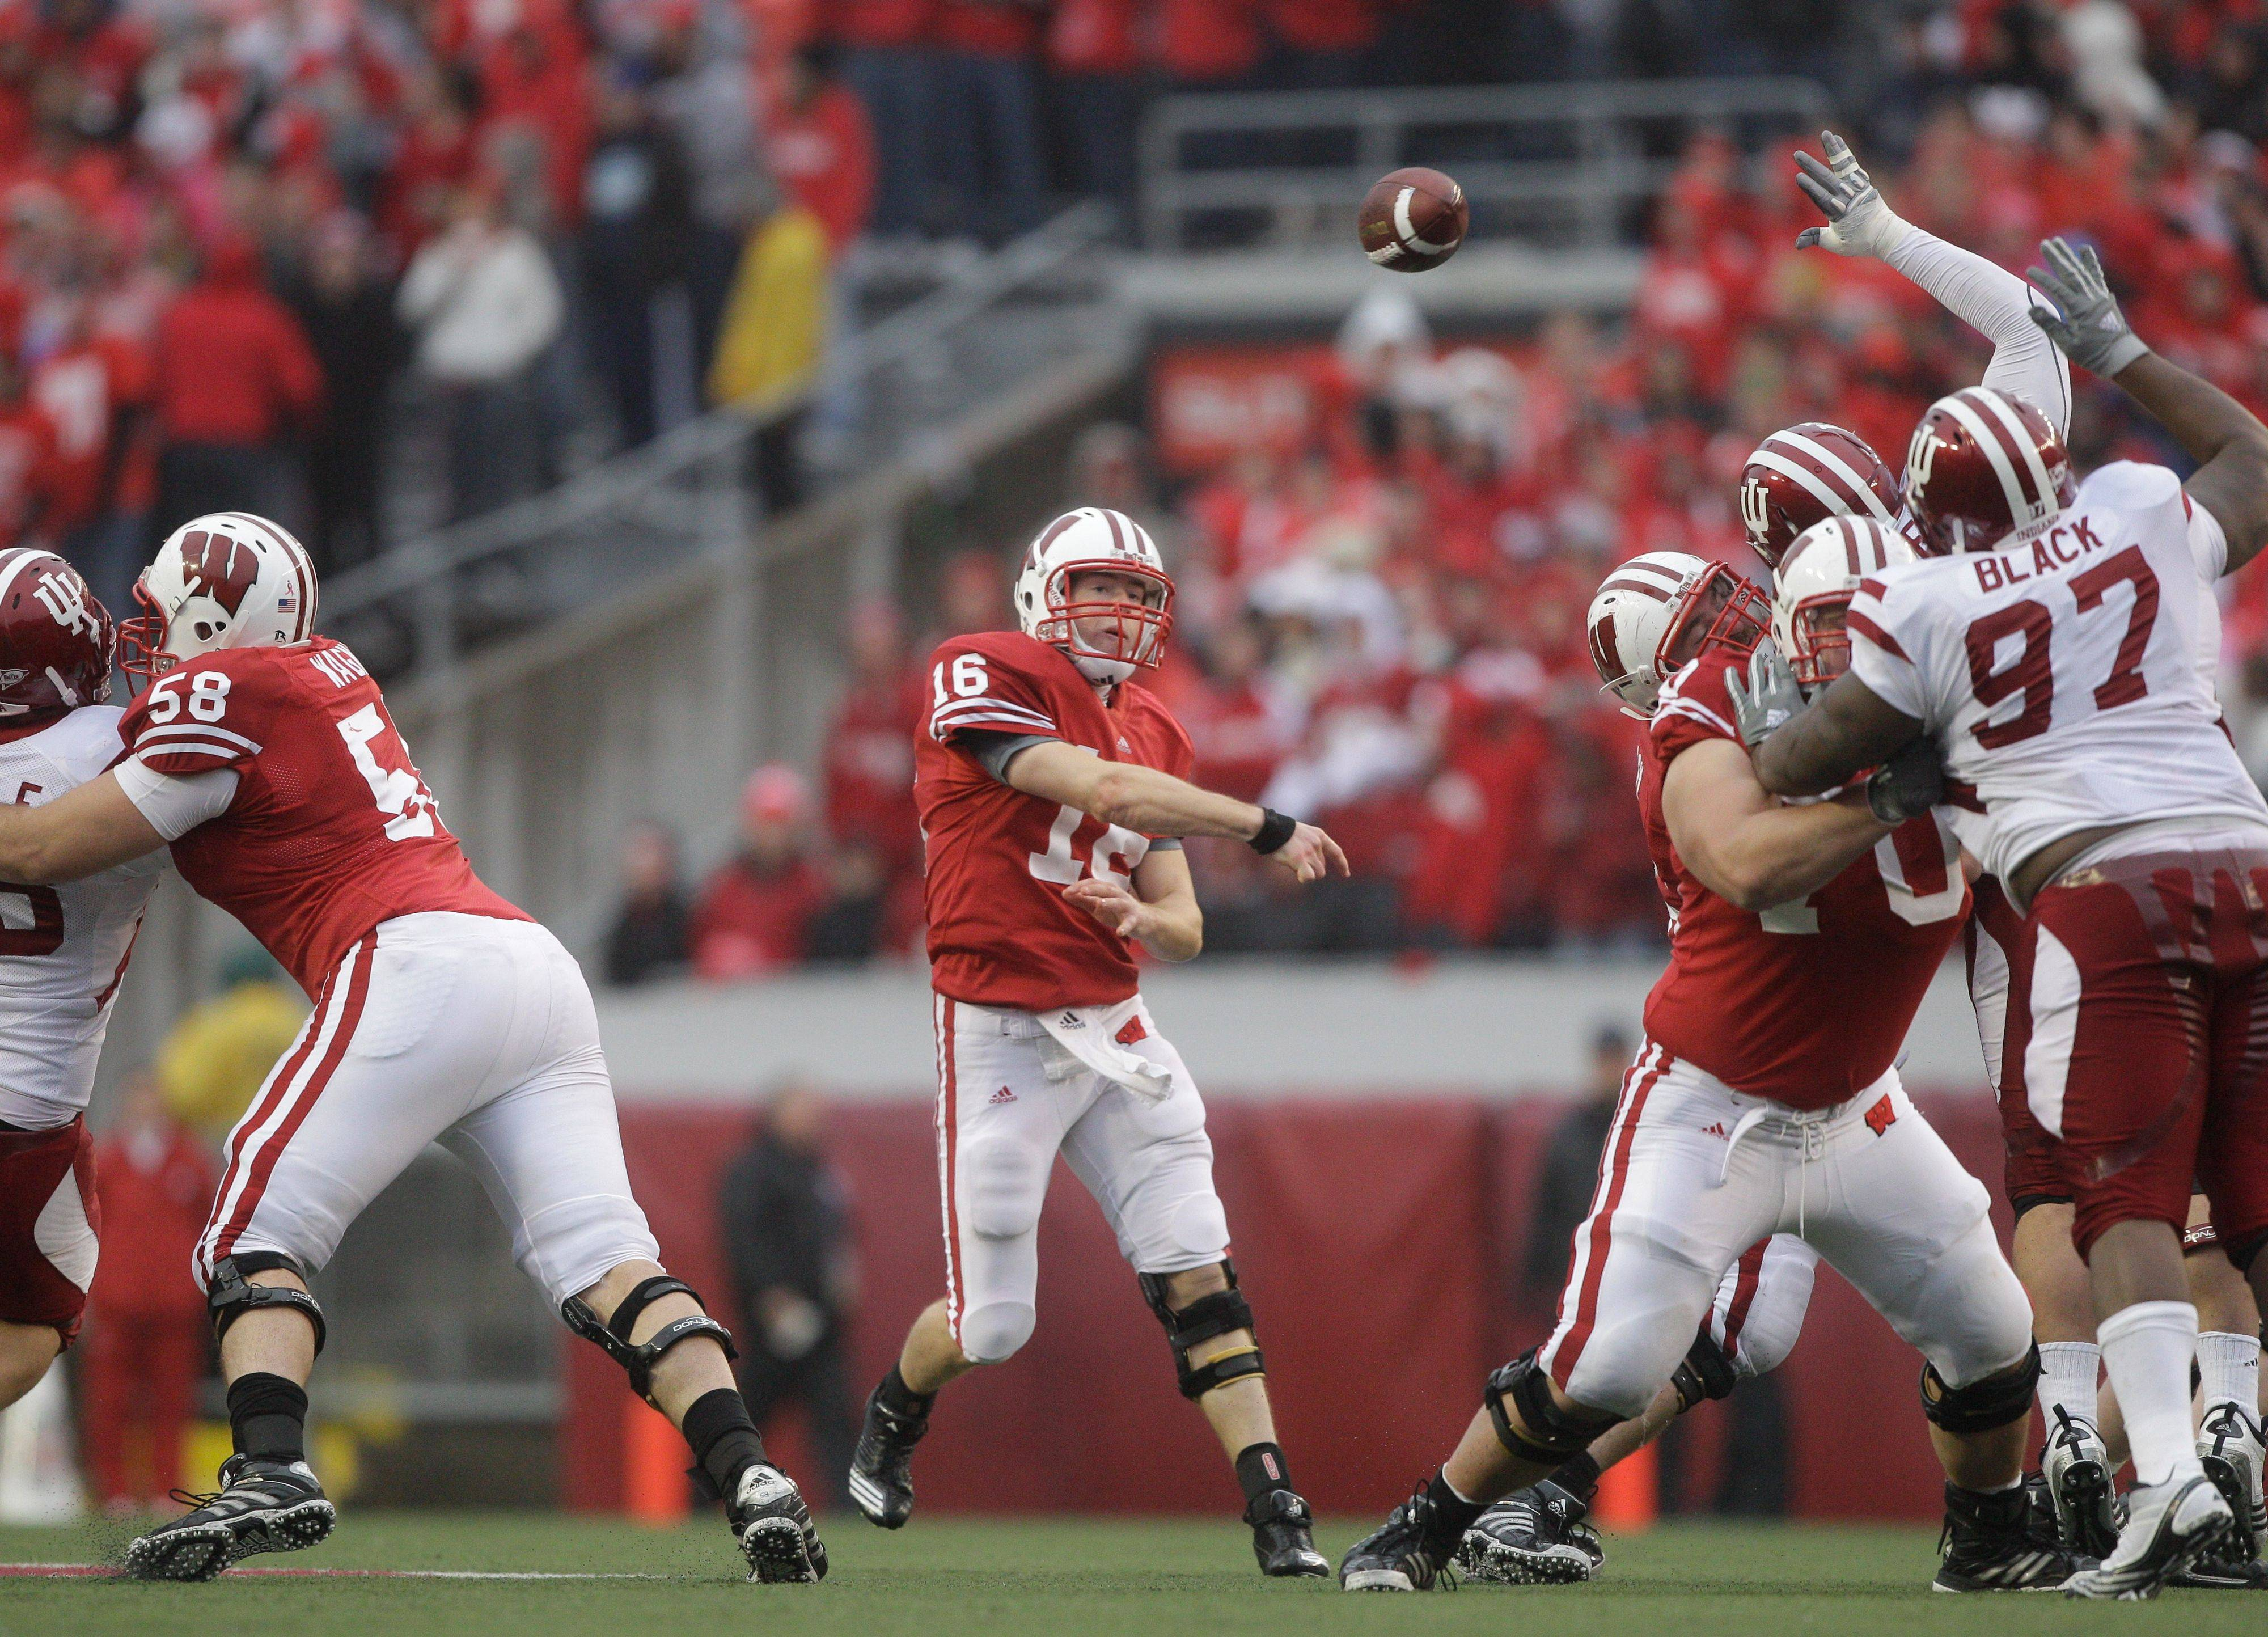 Quarterback Scott Tolzien of Fremd High Schools will lead the Wisconsin Badgers against Northwestern on Saturday.